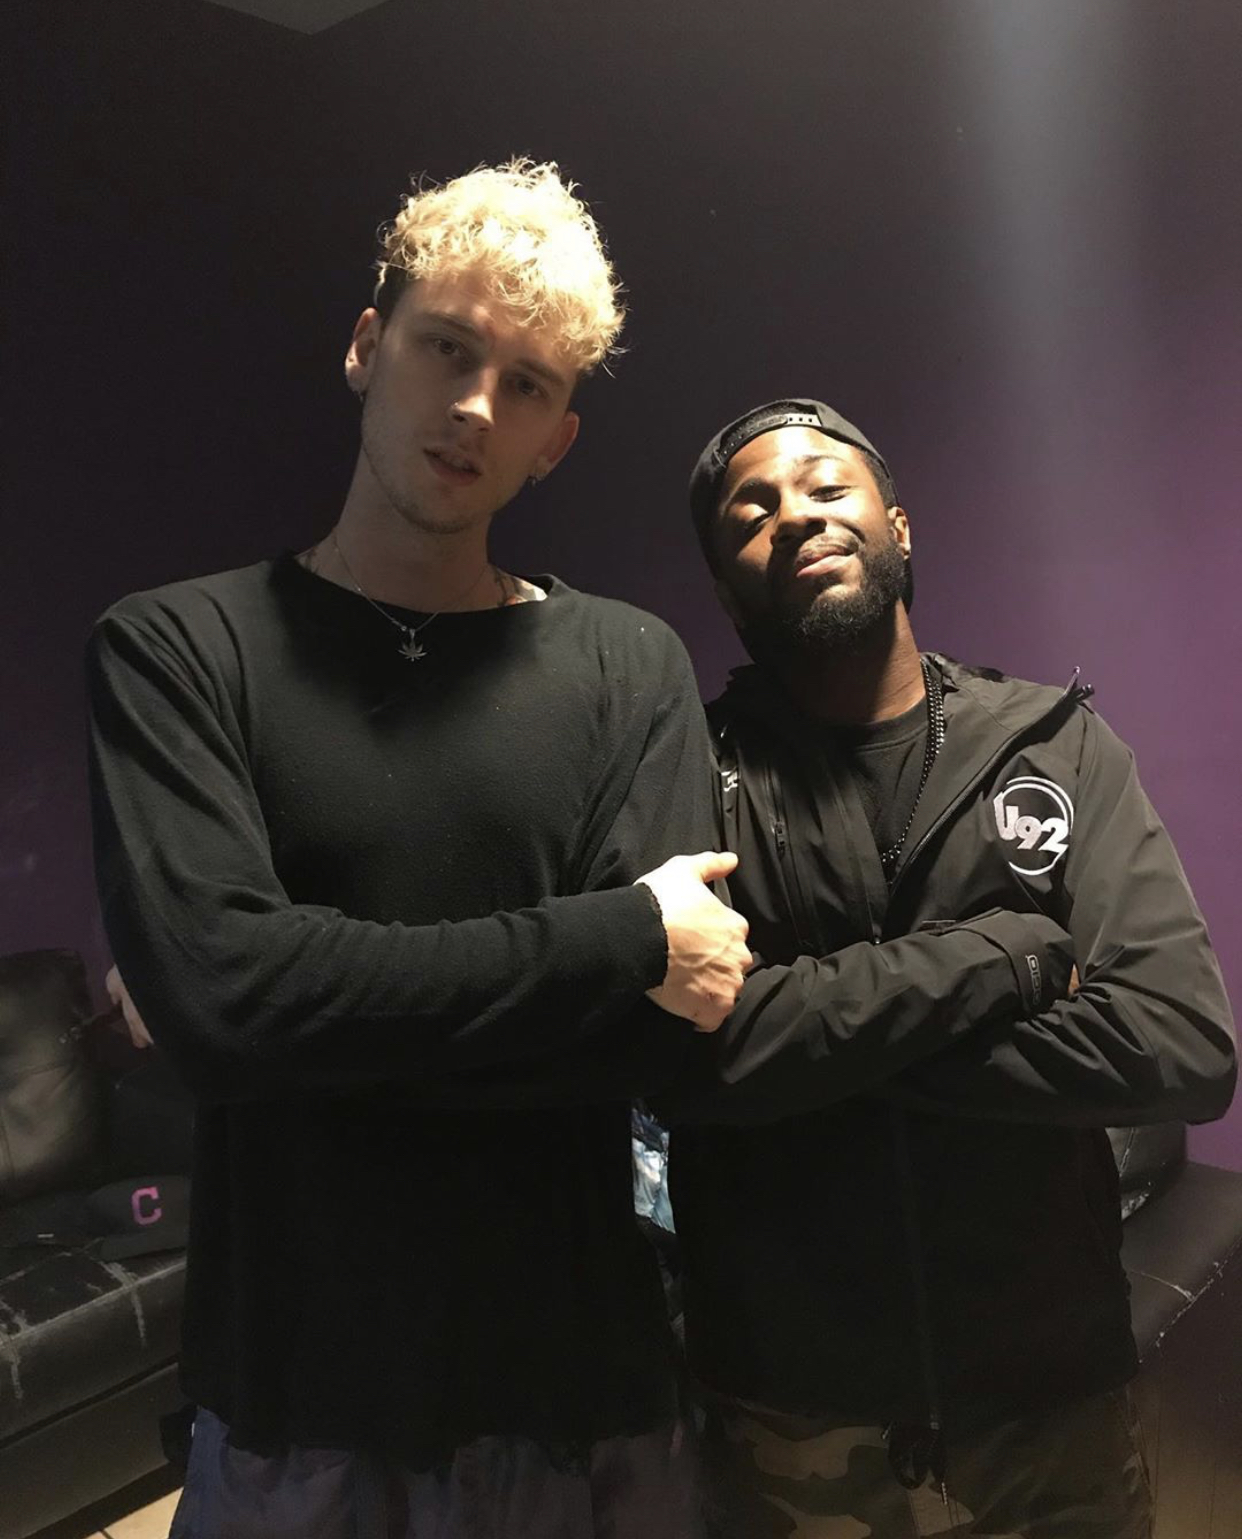 Bangarang W/ Machine Gun Kelly